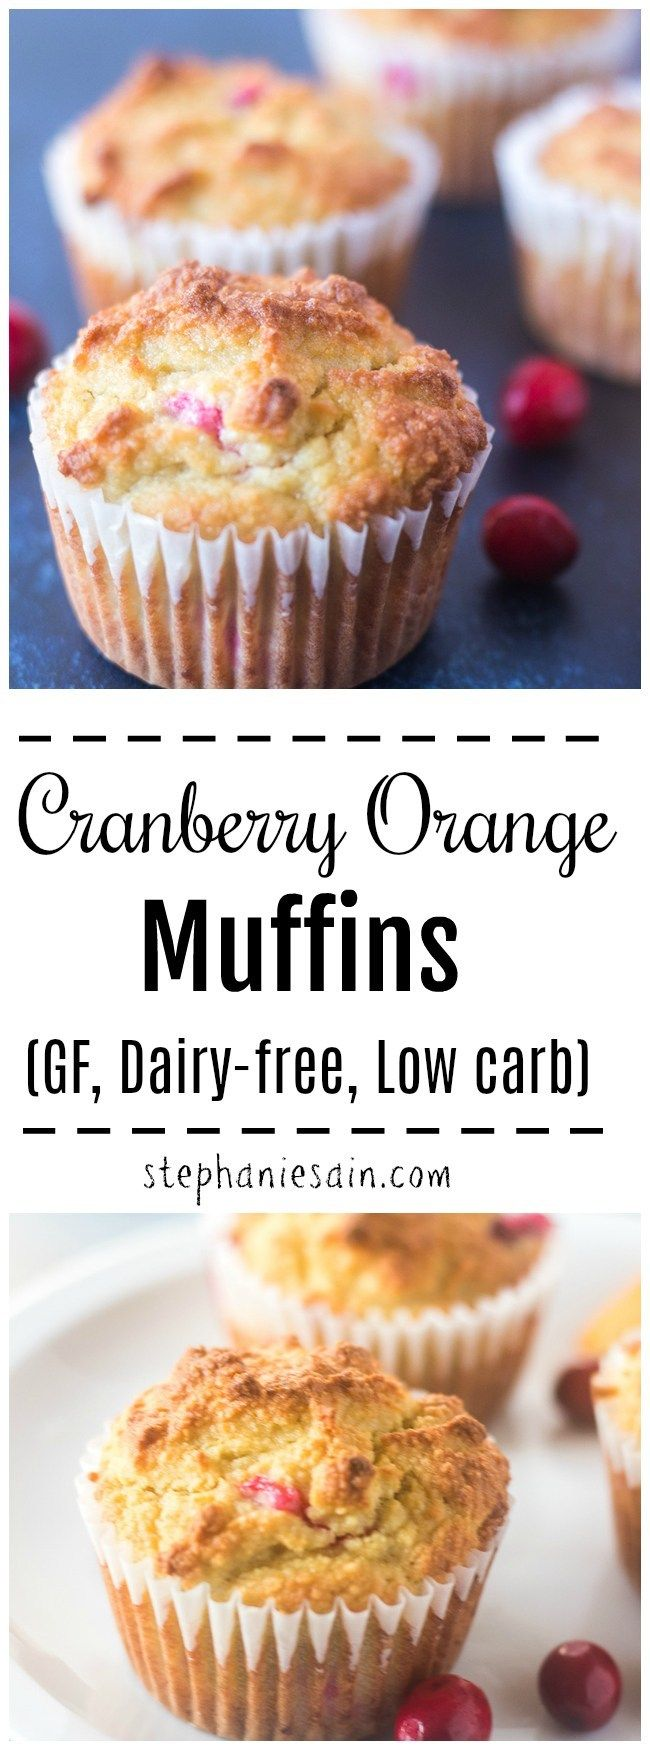 These Cranberry Orange Muffins are moist, tender and bursting with fresh tart cranberries. Lightly sweetened with maple syrup and orange juice. Perfect for quick healthy breakfast or snacks. Gluten Free, Dairy free, No added refined sugars and low carb. #dairyfreesmoothie